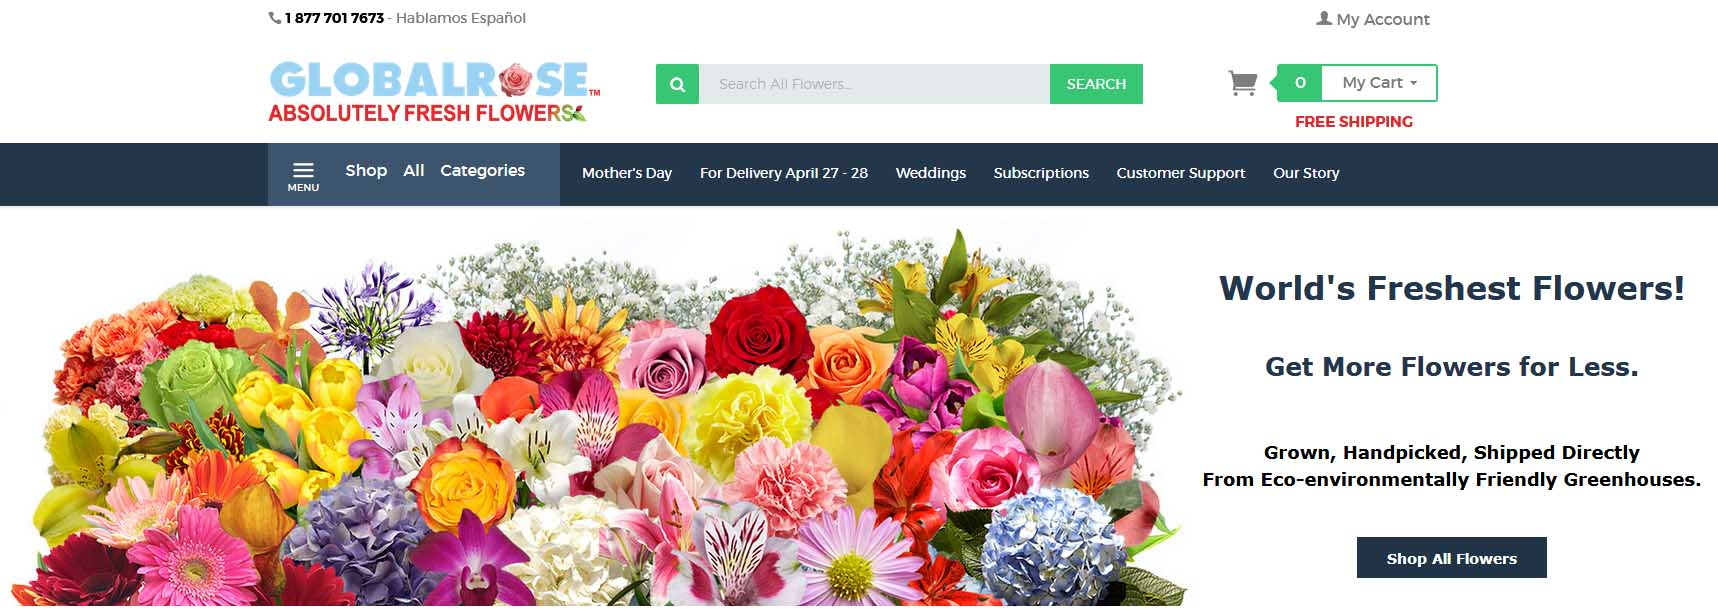 Globalrose online store overview